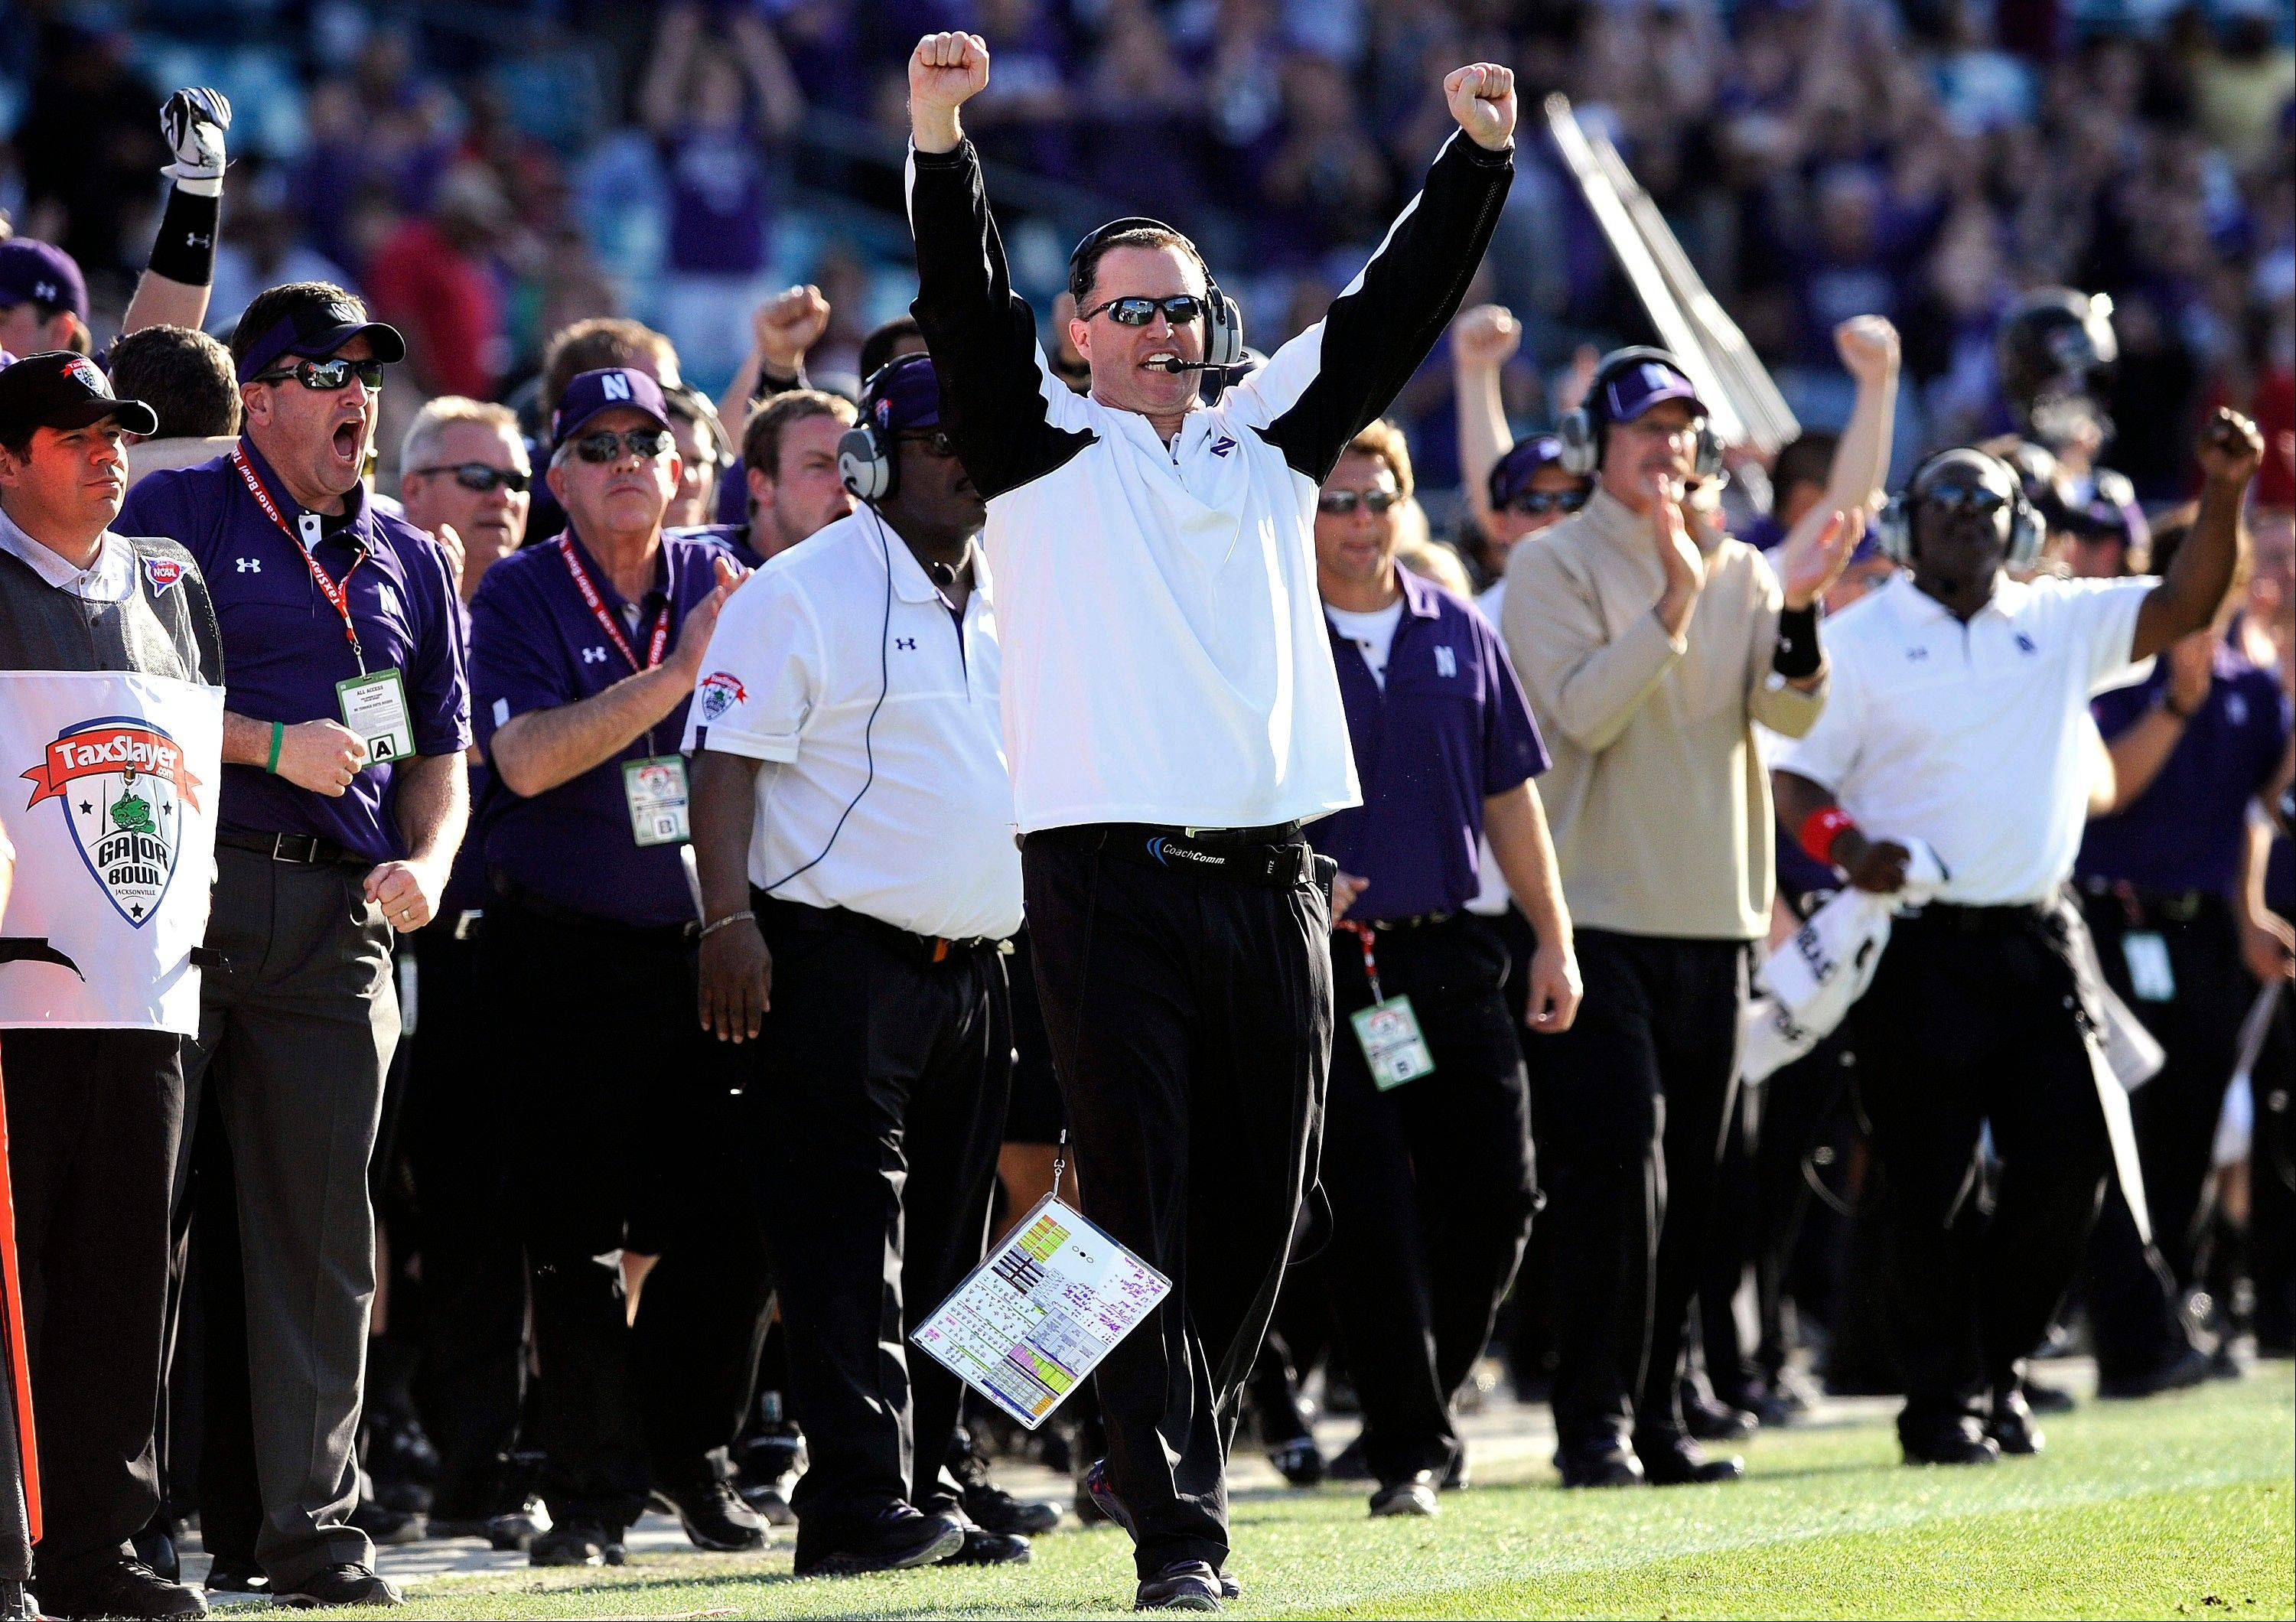 Northwestern head coach Pat Fitzgerald celebrates a first down in the closing seconds of the Gator Bowl against Mississippi State in Jacksonville, Fla. Northwestern will start the season No. 22 in the coaches� poll.